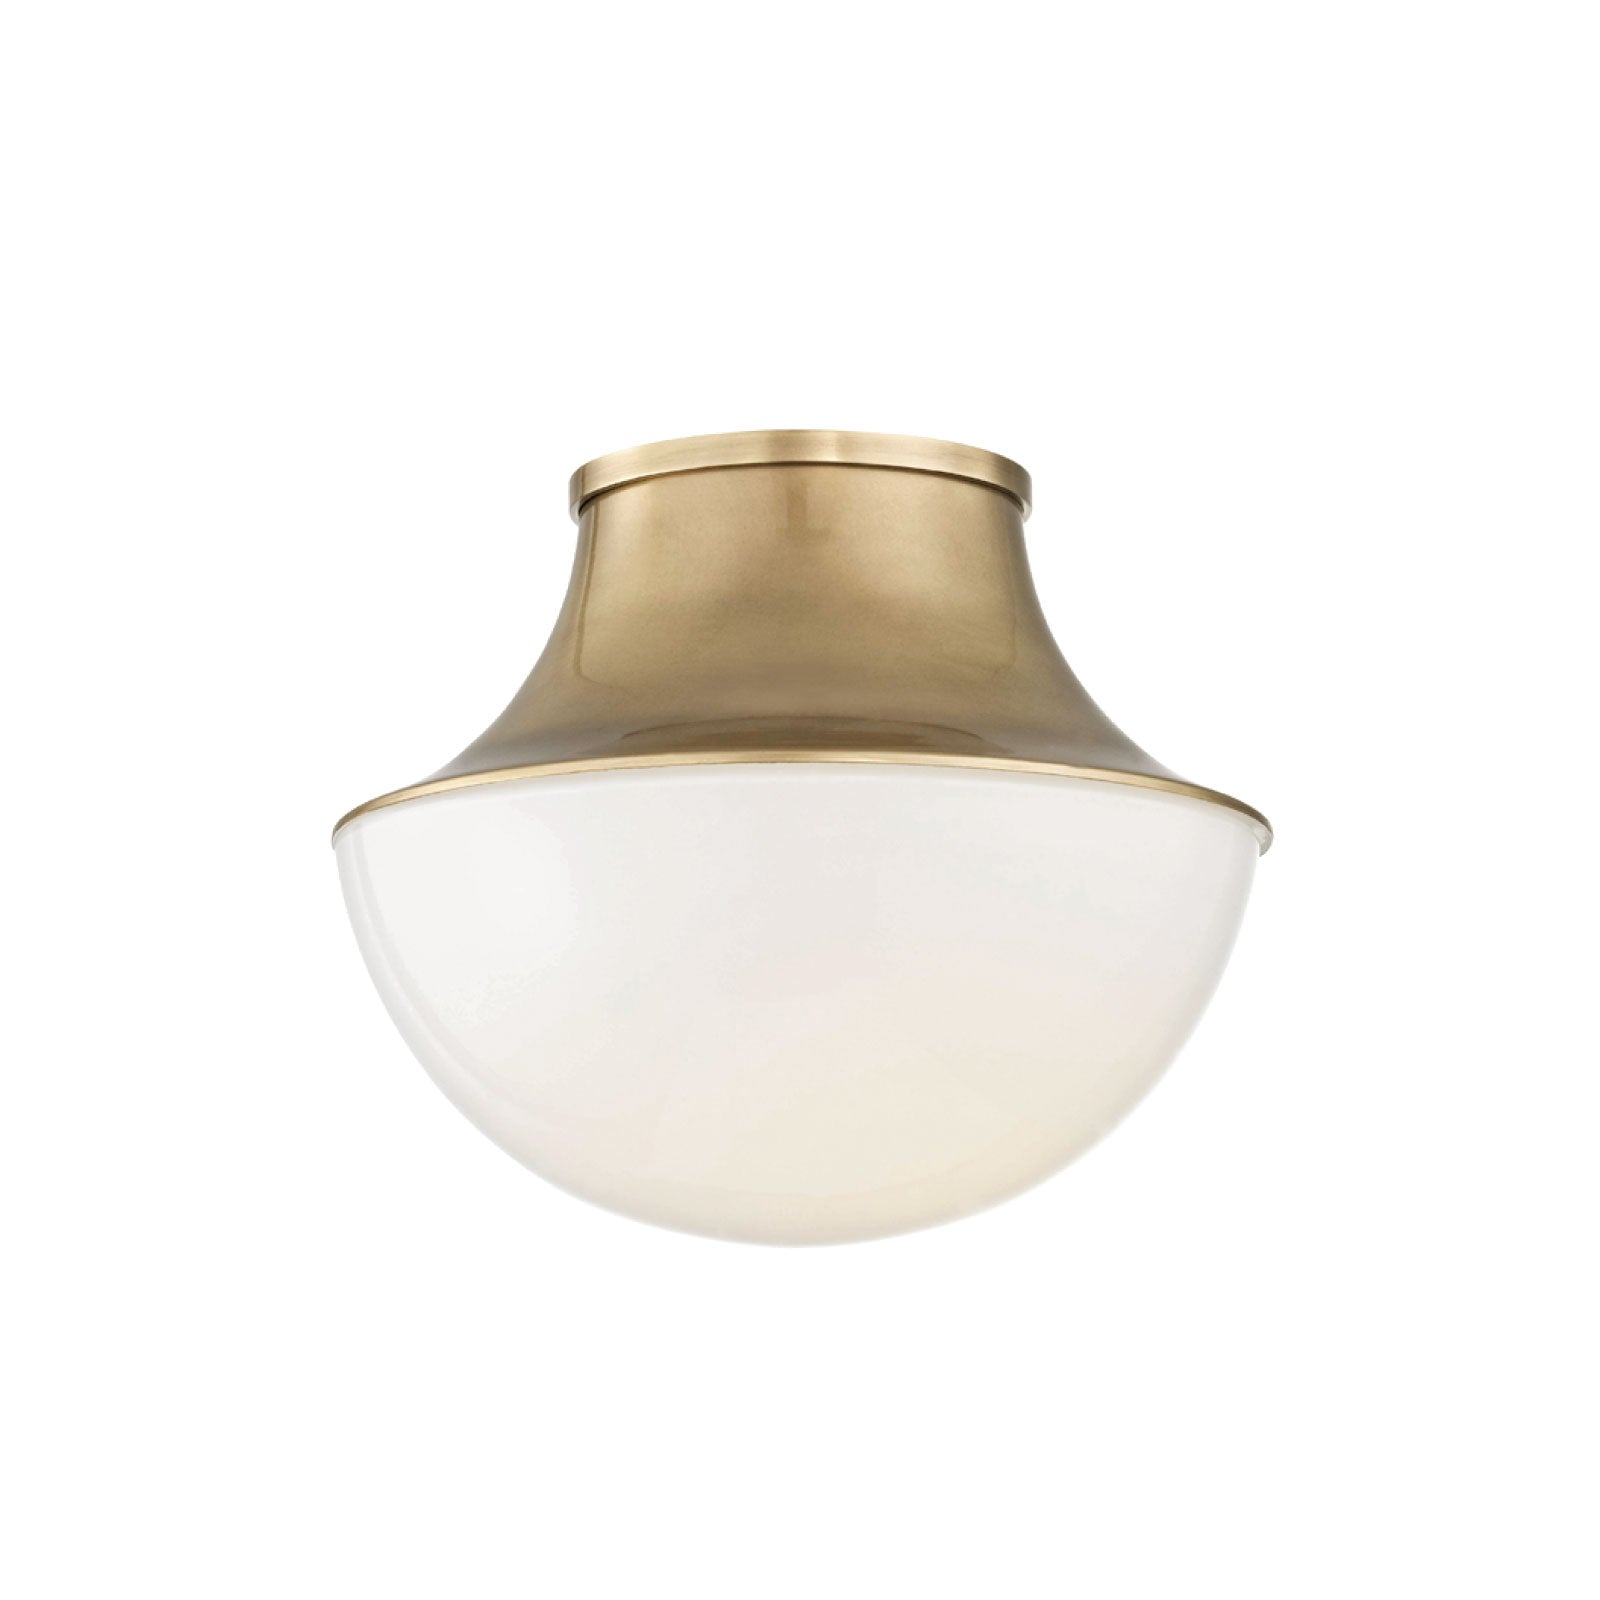 Crosby Flush Mount in Brass - Small